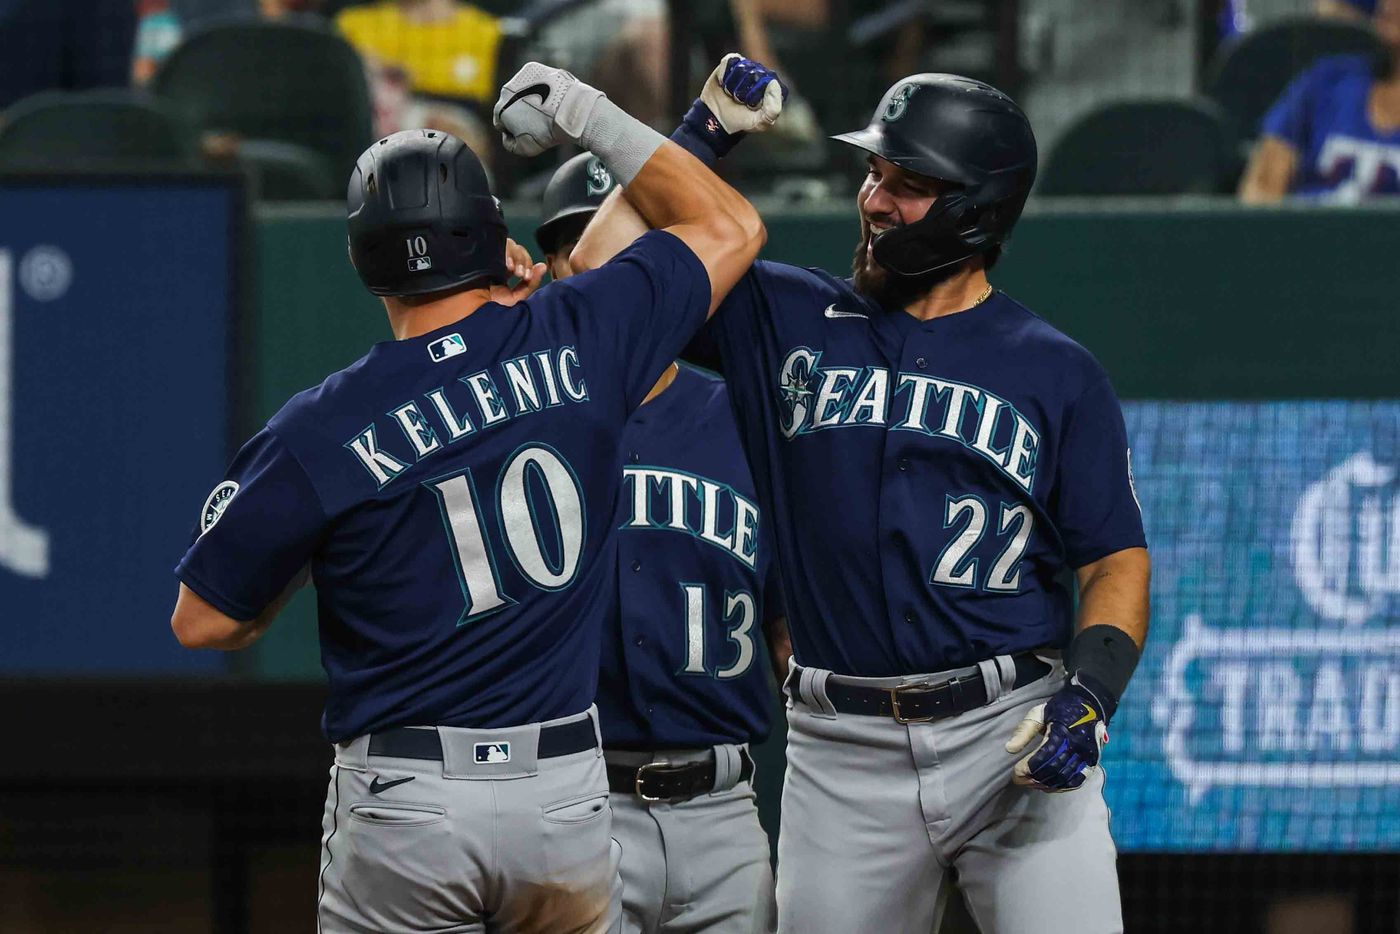 Seattle Mariners Dylan Moore (10) celebrates his homerun with Tom Murphy (22) in the third inning against the Texas Rangers at Globe Life Field in Arlington, Texas, Friday, July 30, 2021. (Lola Gomez/The Dallas Morning News)